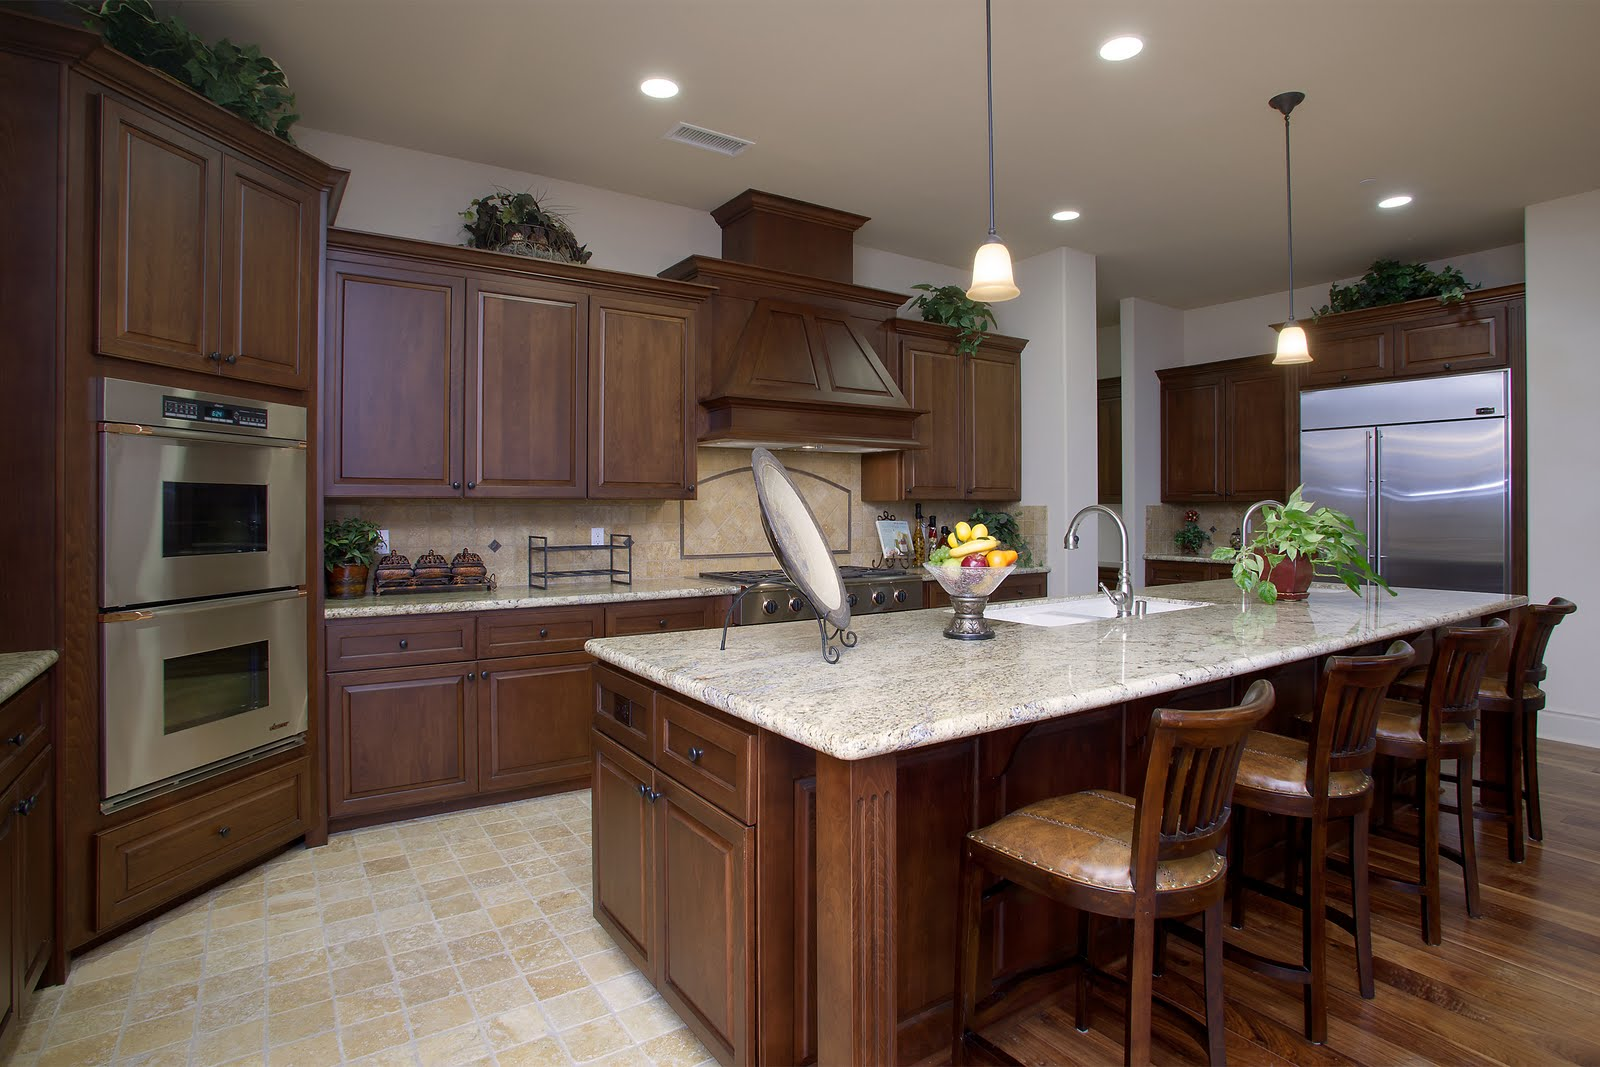 Kitchen model homes kitchen design photos 2015 for House kitchen model